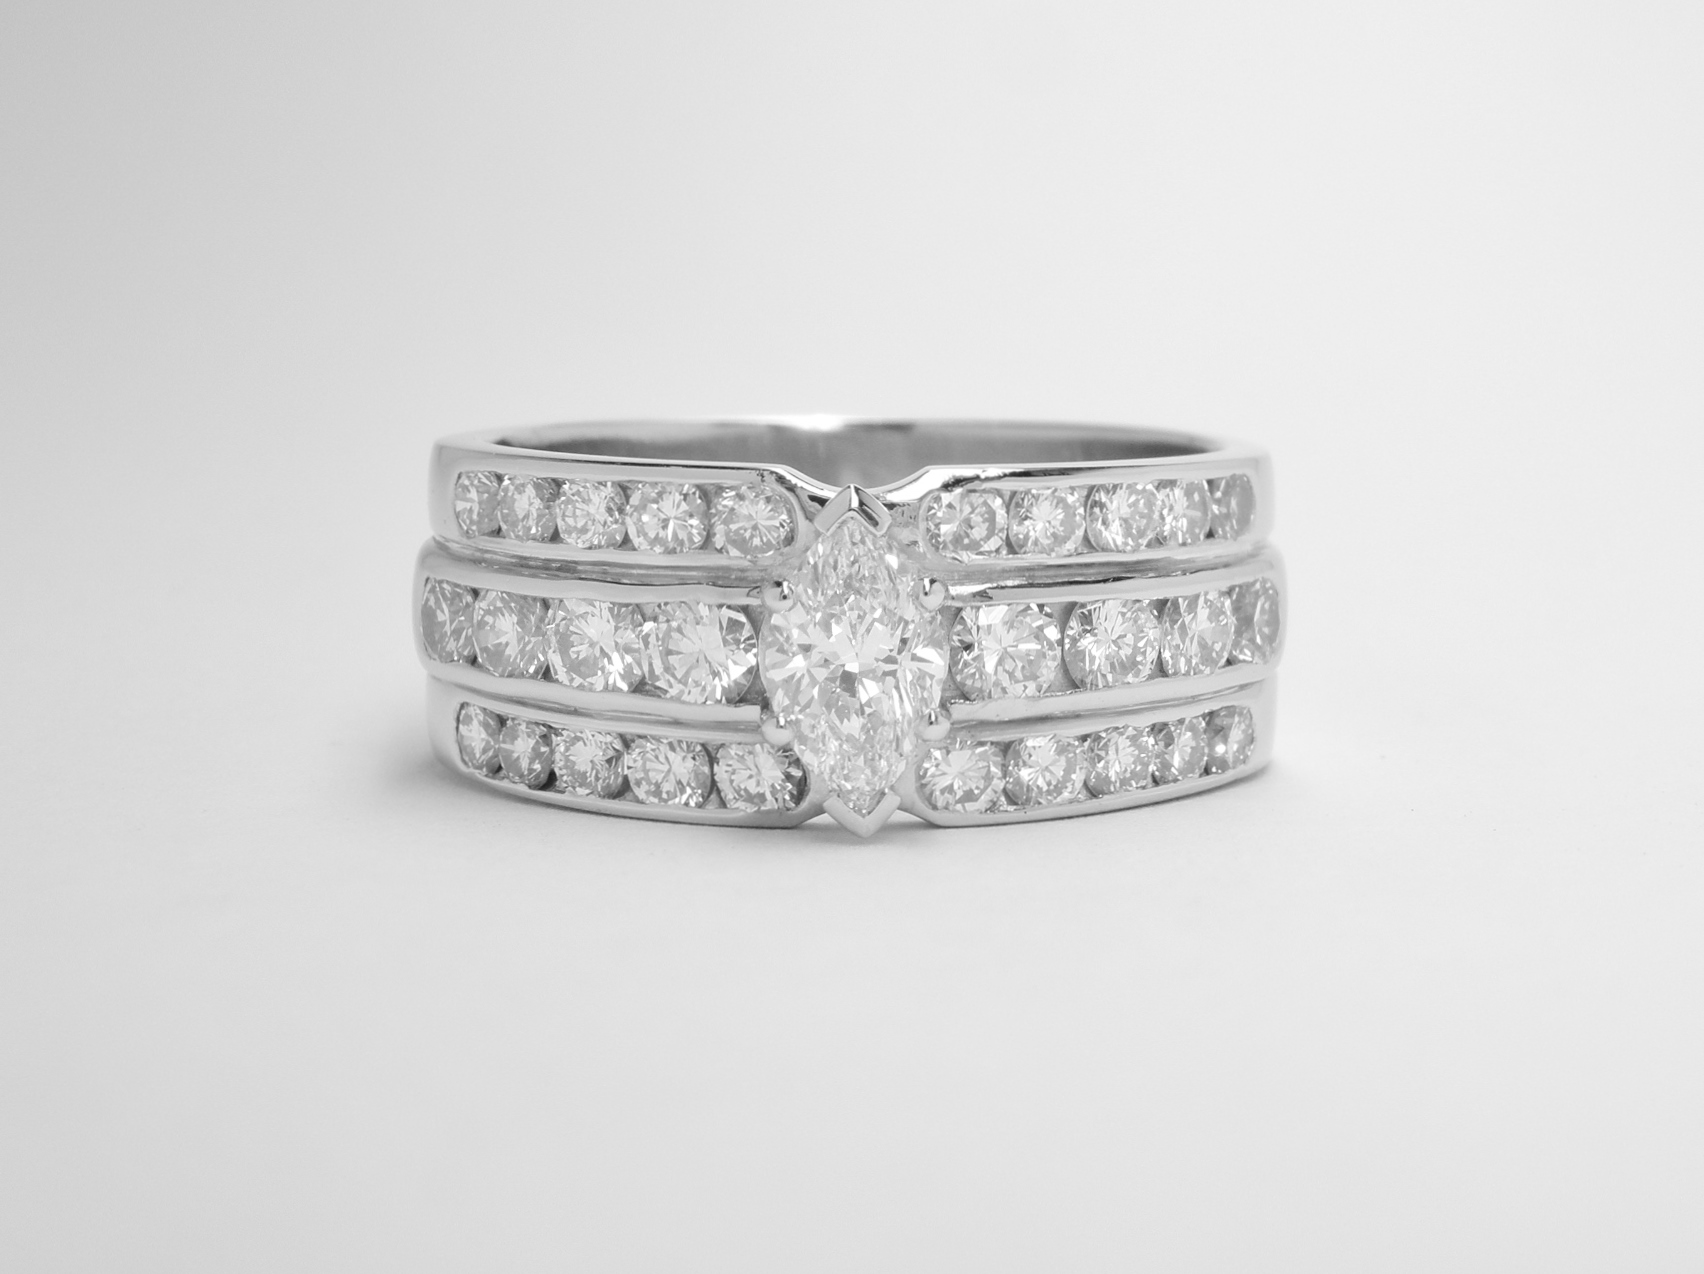 A triple banded channel set round brilliant cut diamond ring, mounted in palladium and platinum with a 0.41ct. 'D' colour, VS1 clarity marquise diamond claw set in the centre.